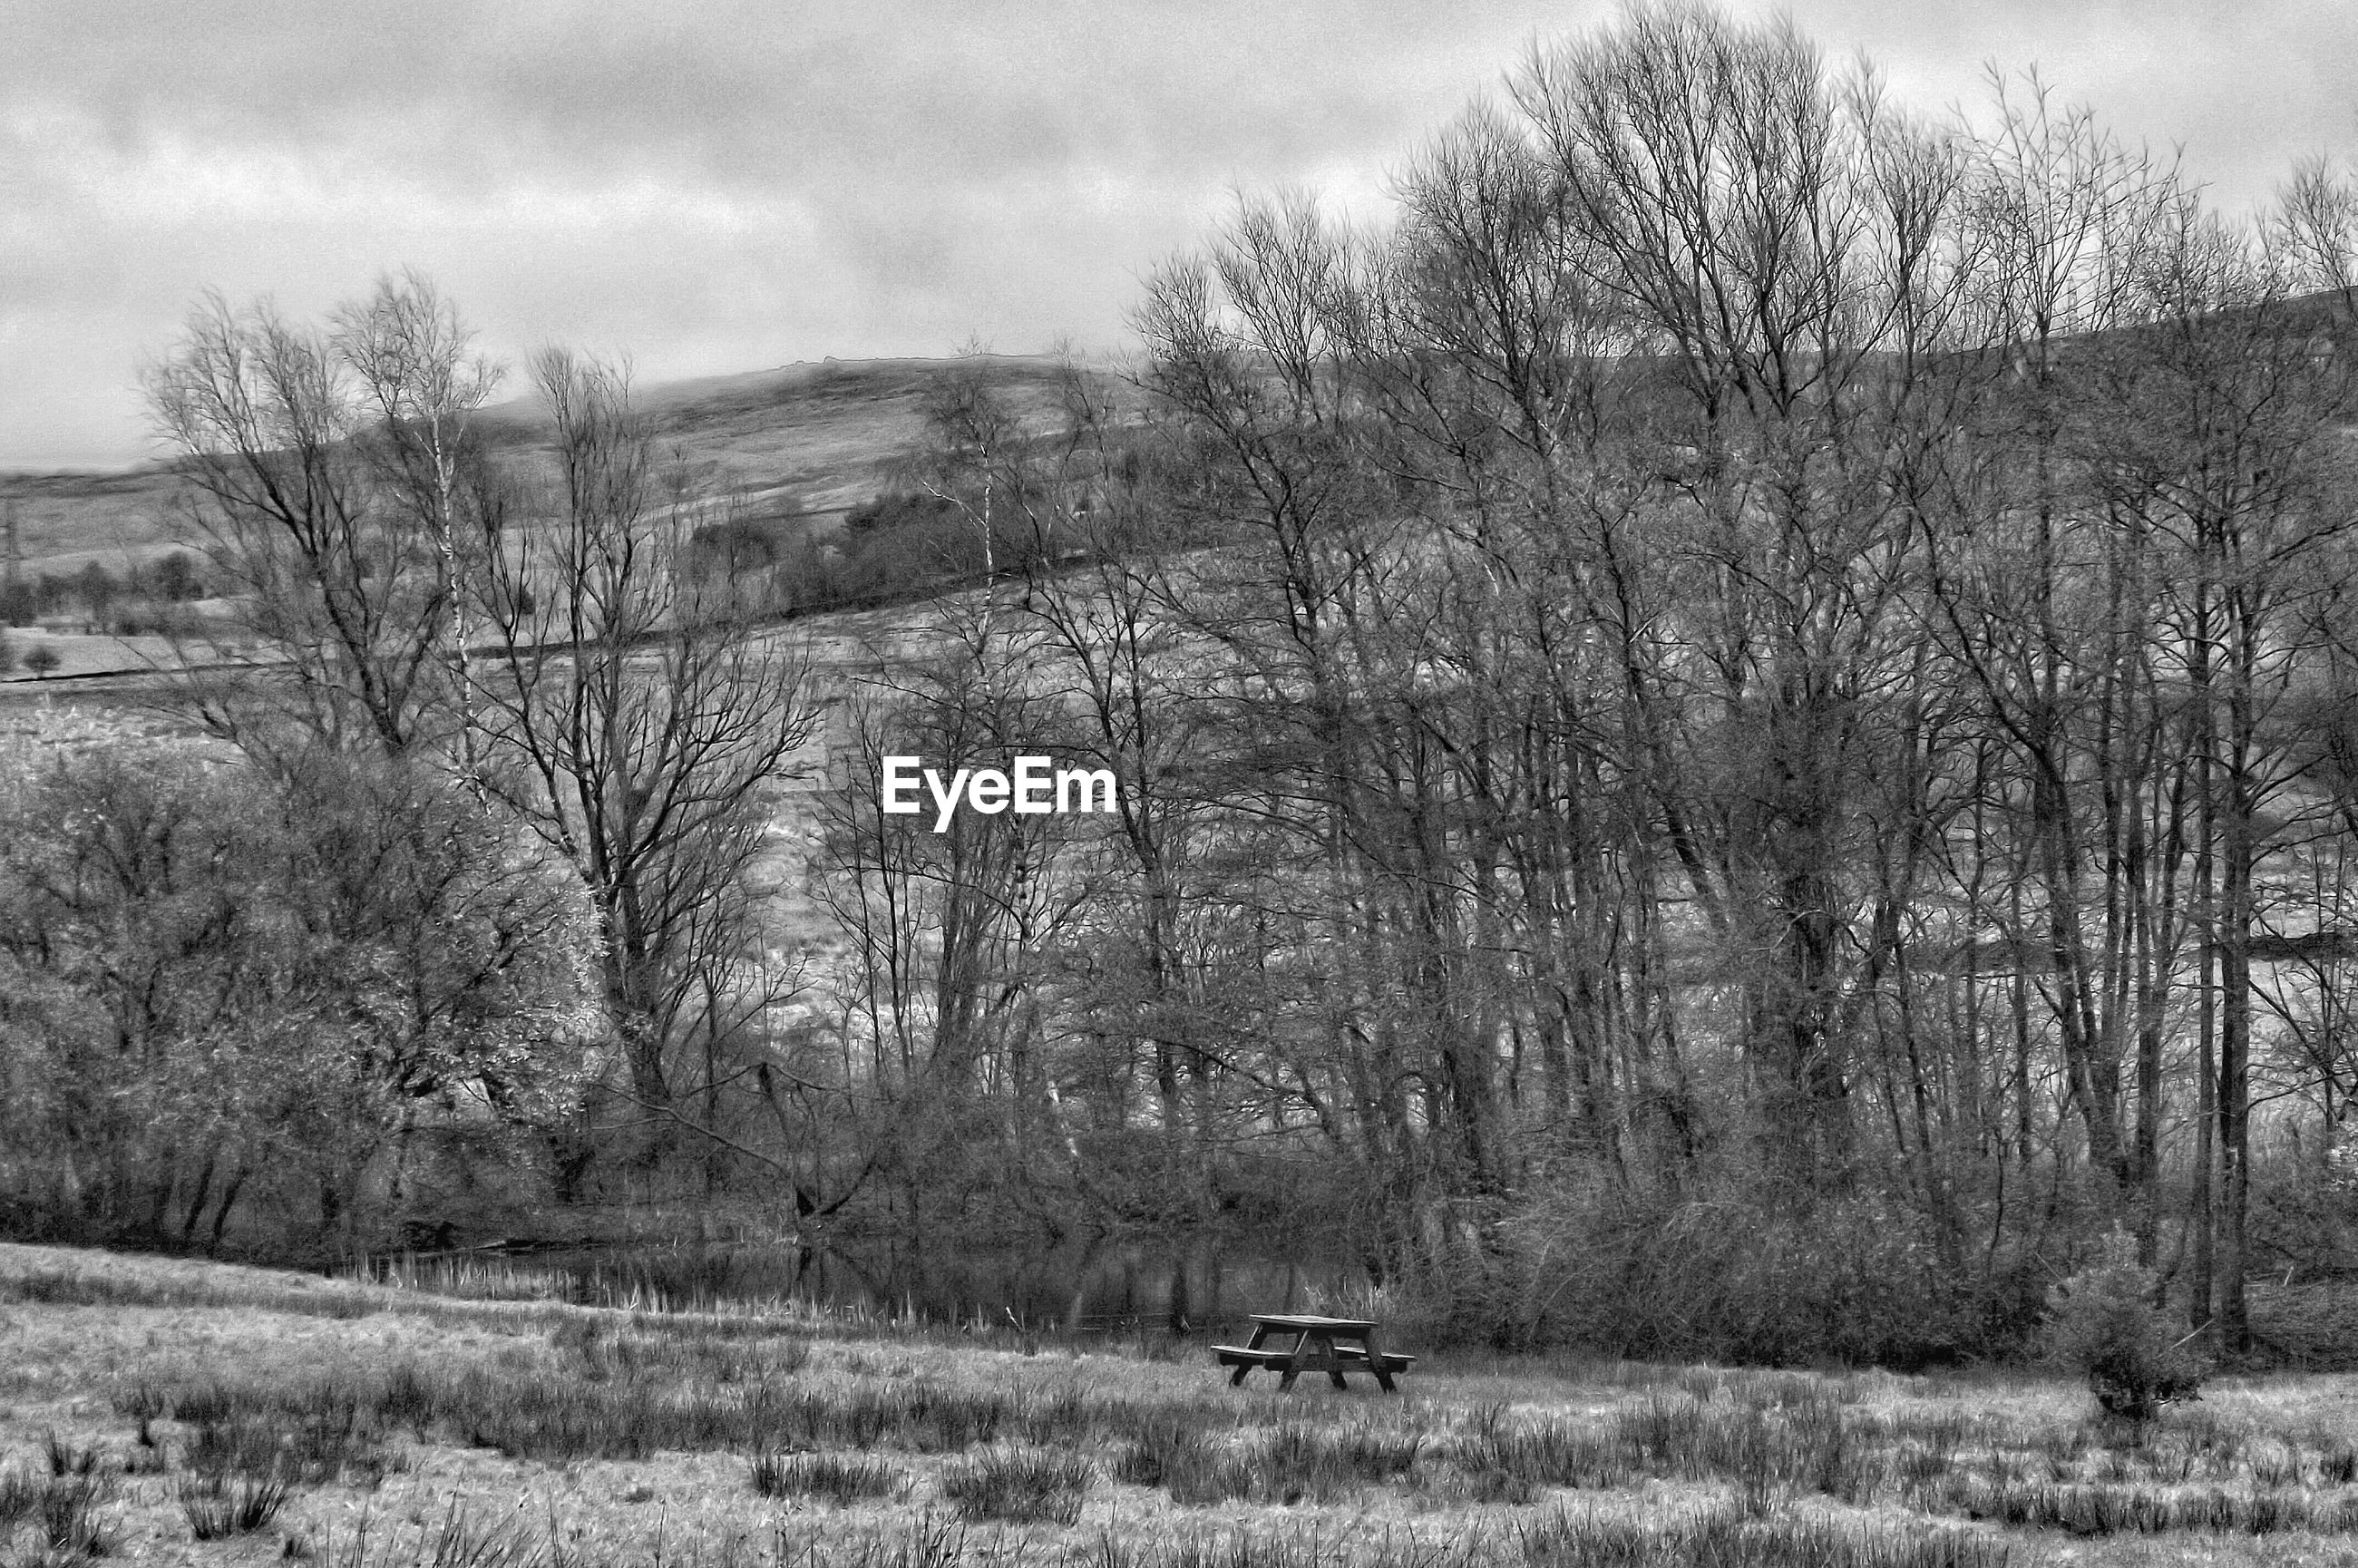 Bare trees on landscape against cloudy sky